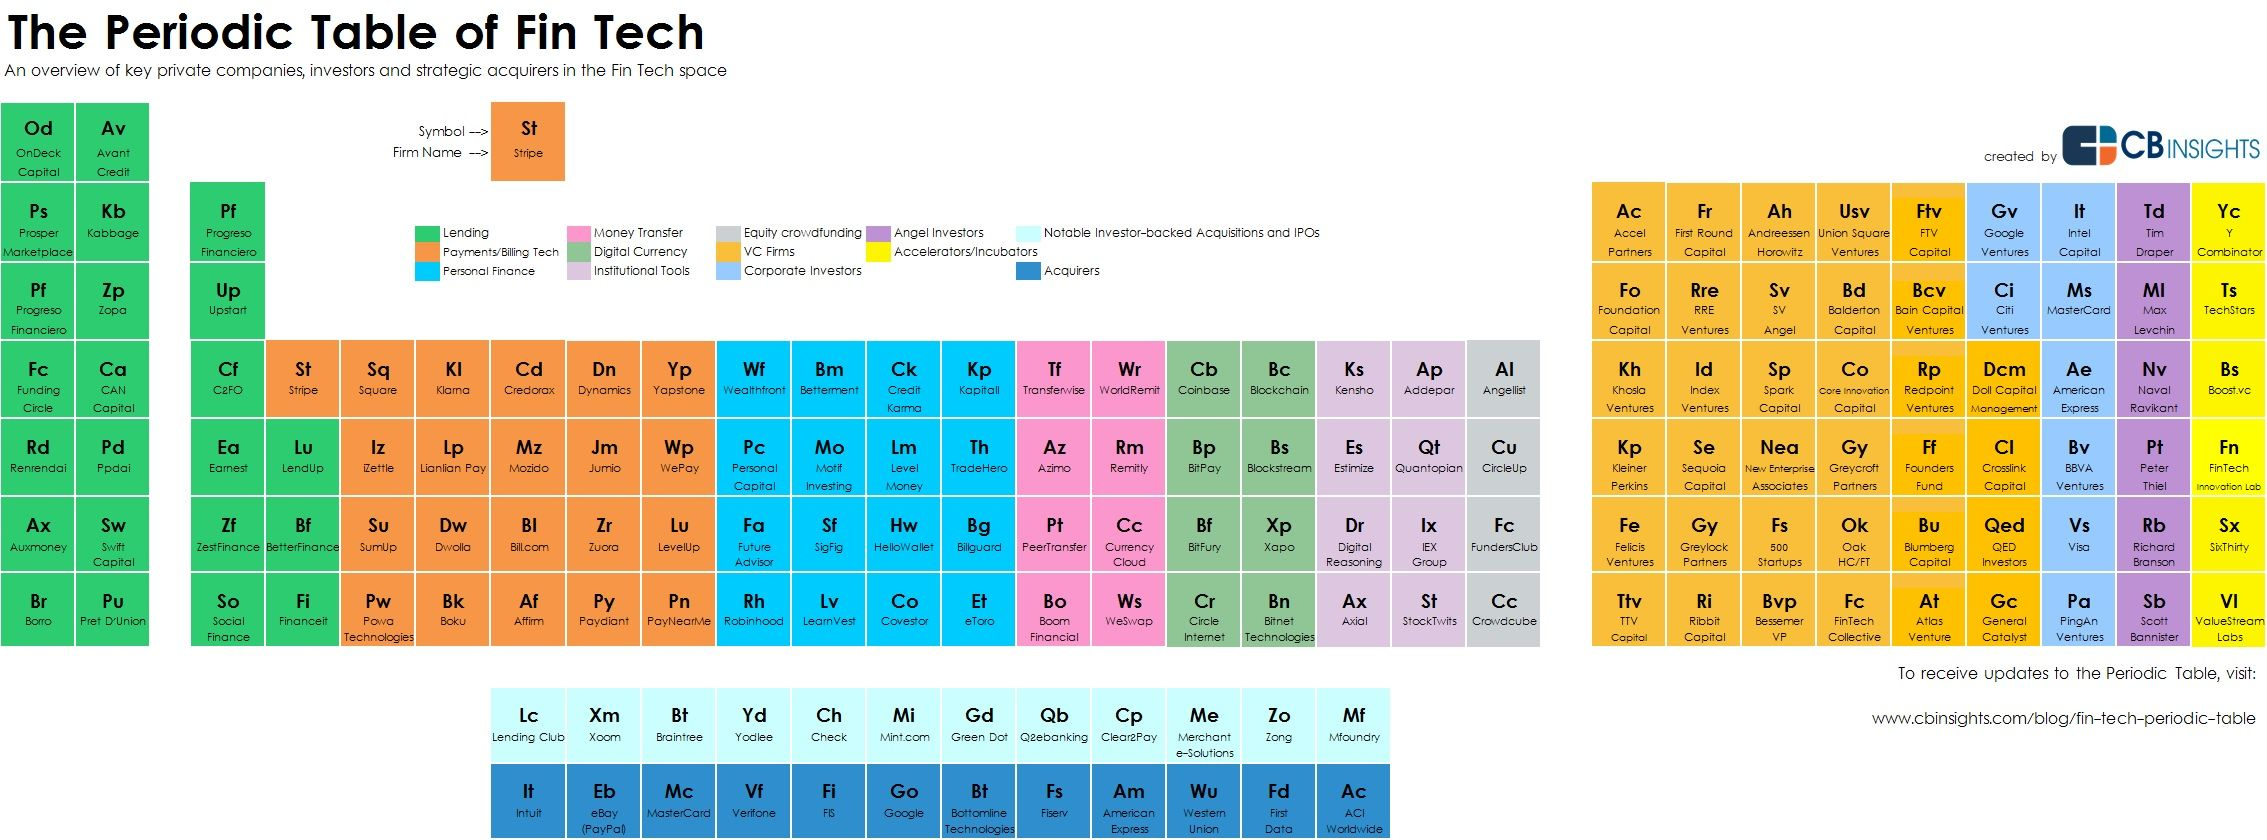 The Periodic Table of FinTech highlights the 178 companies